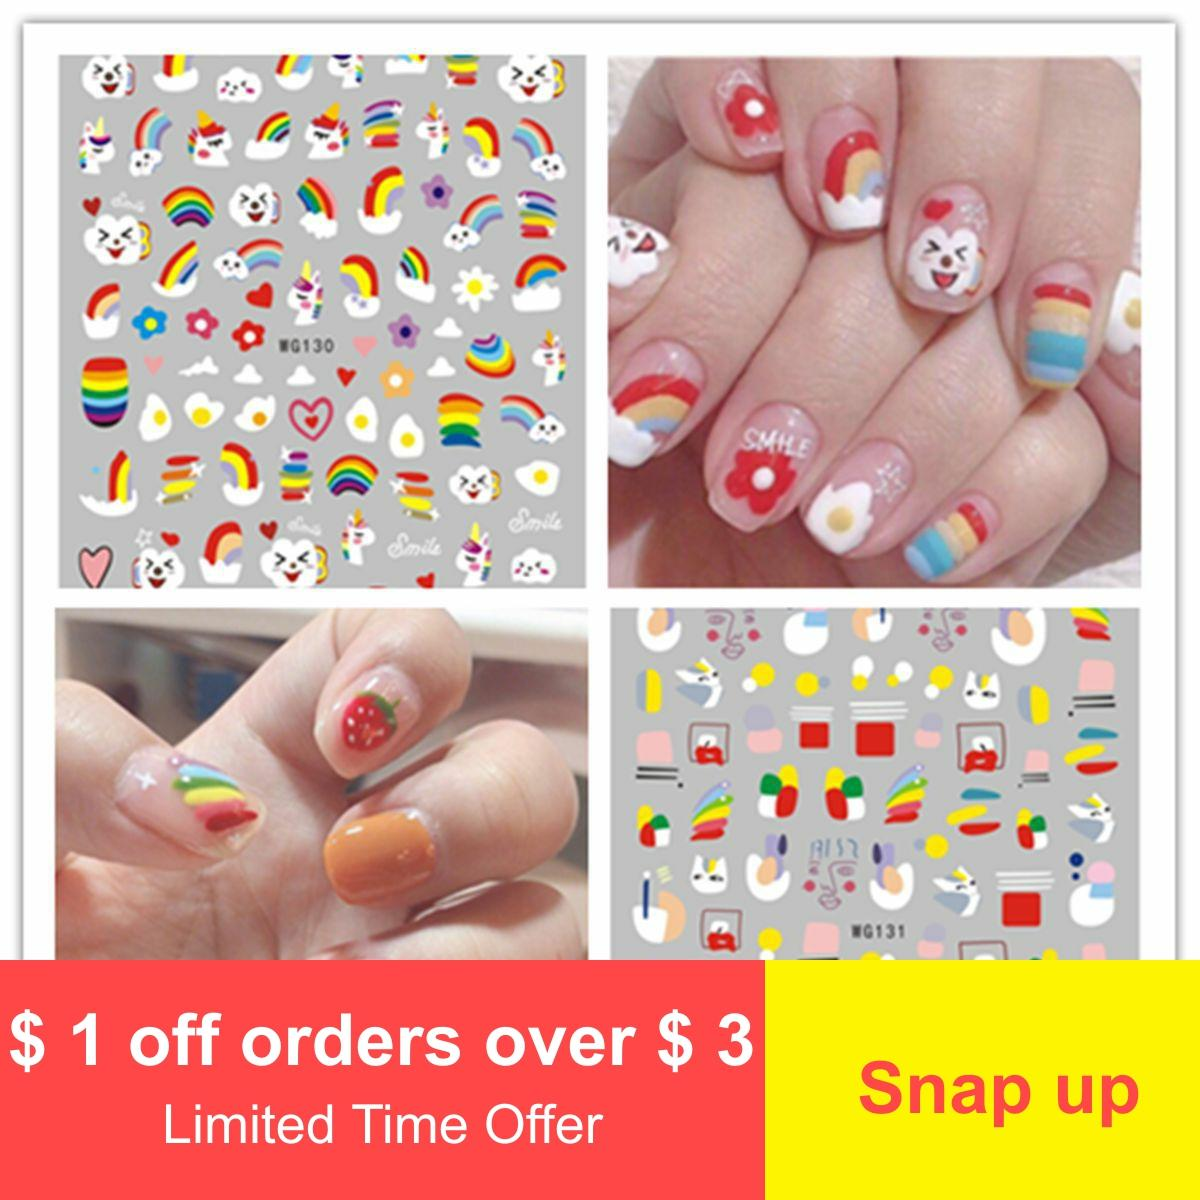 New Hyun-a <font><b>Kim</b></font> wind strap glue nail <font><b>stickers</b></font> paper face line nail <font><b>stickers</b></font> cartoon nail <font><b>stickers</b></font> image